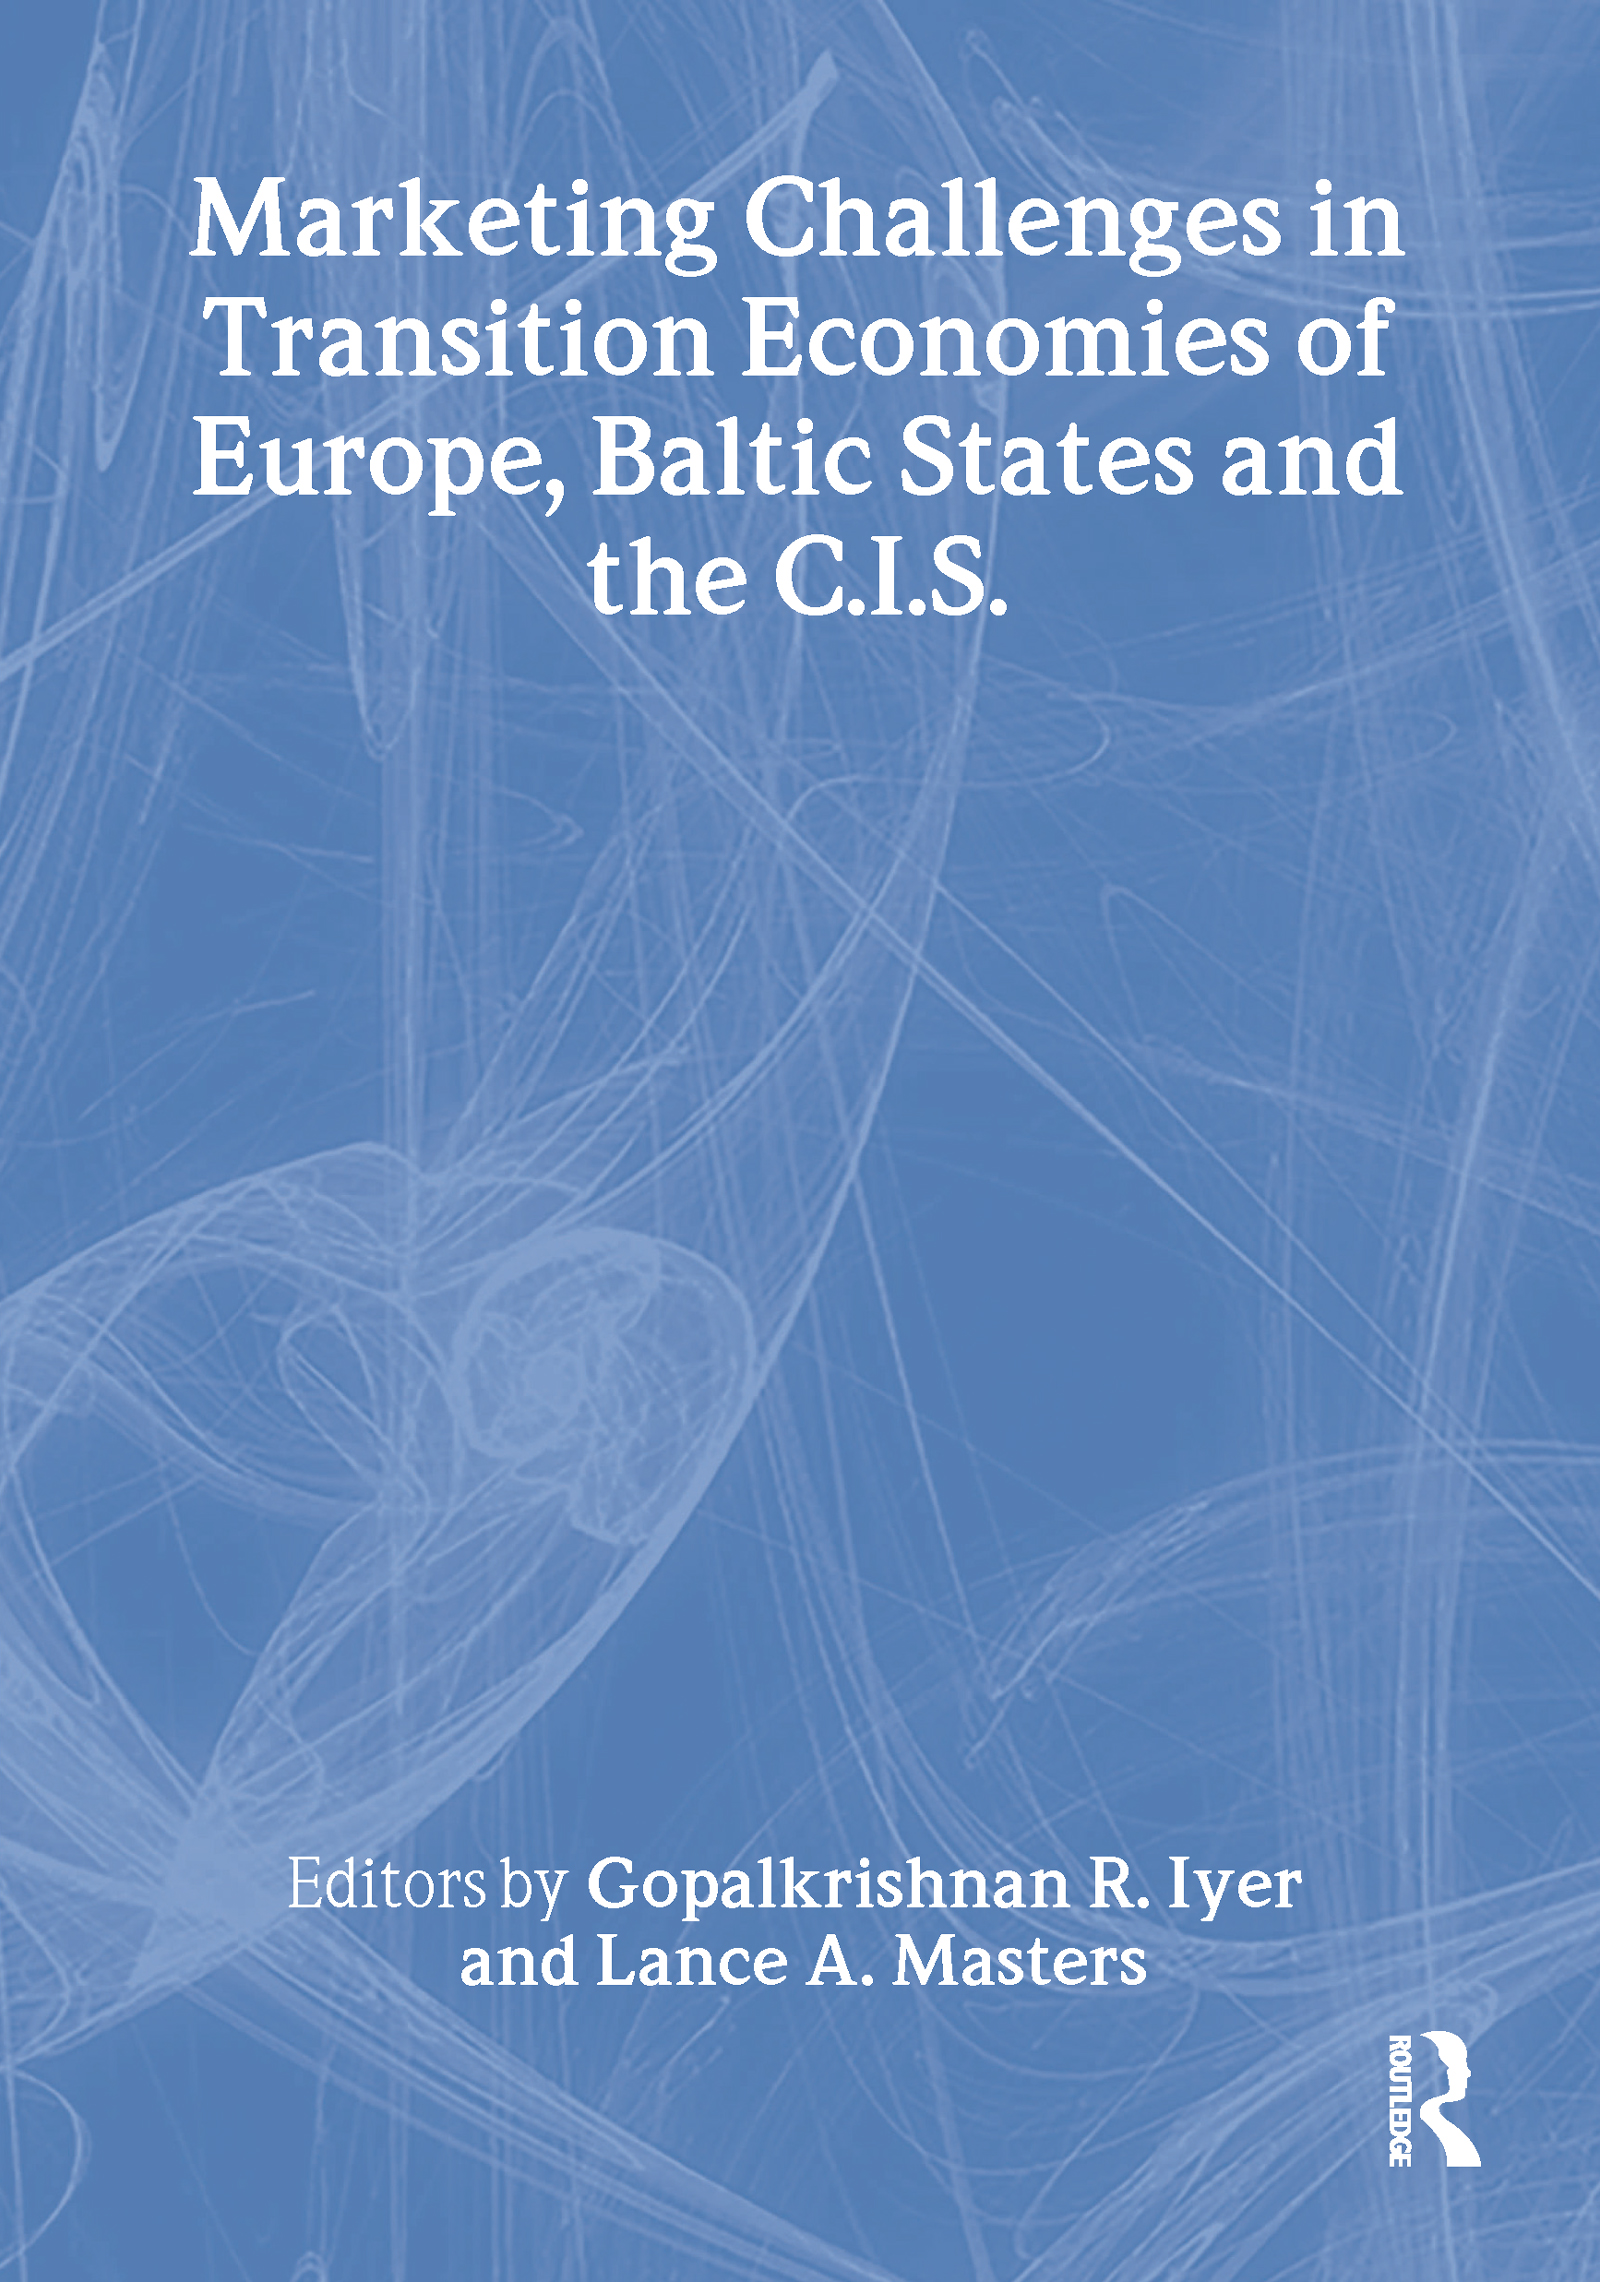 Marketing Challenges in Transition Economies of Europe, Baltic States and the CIS (Paperback) book cover